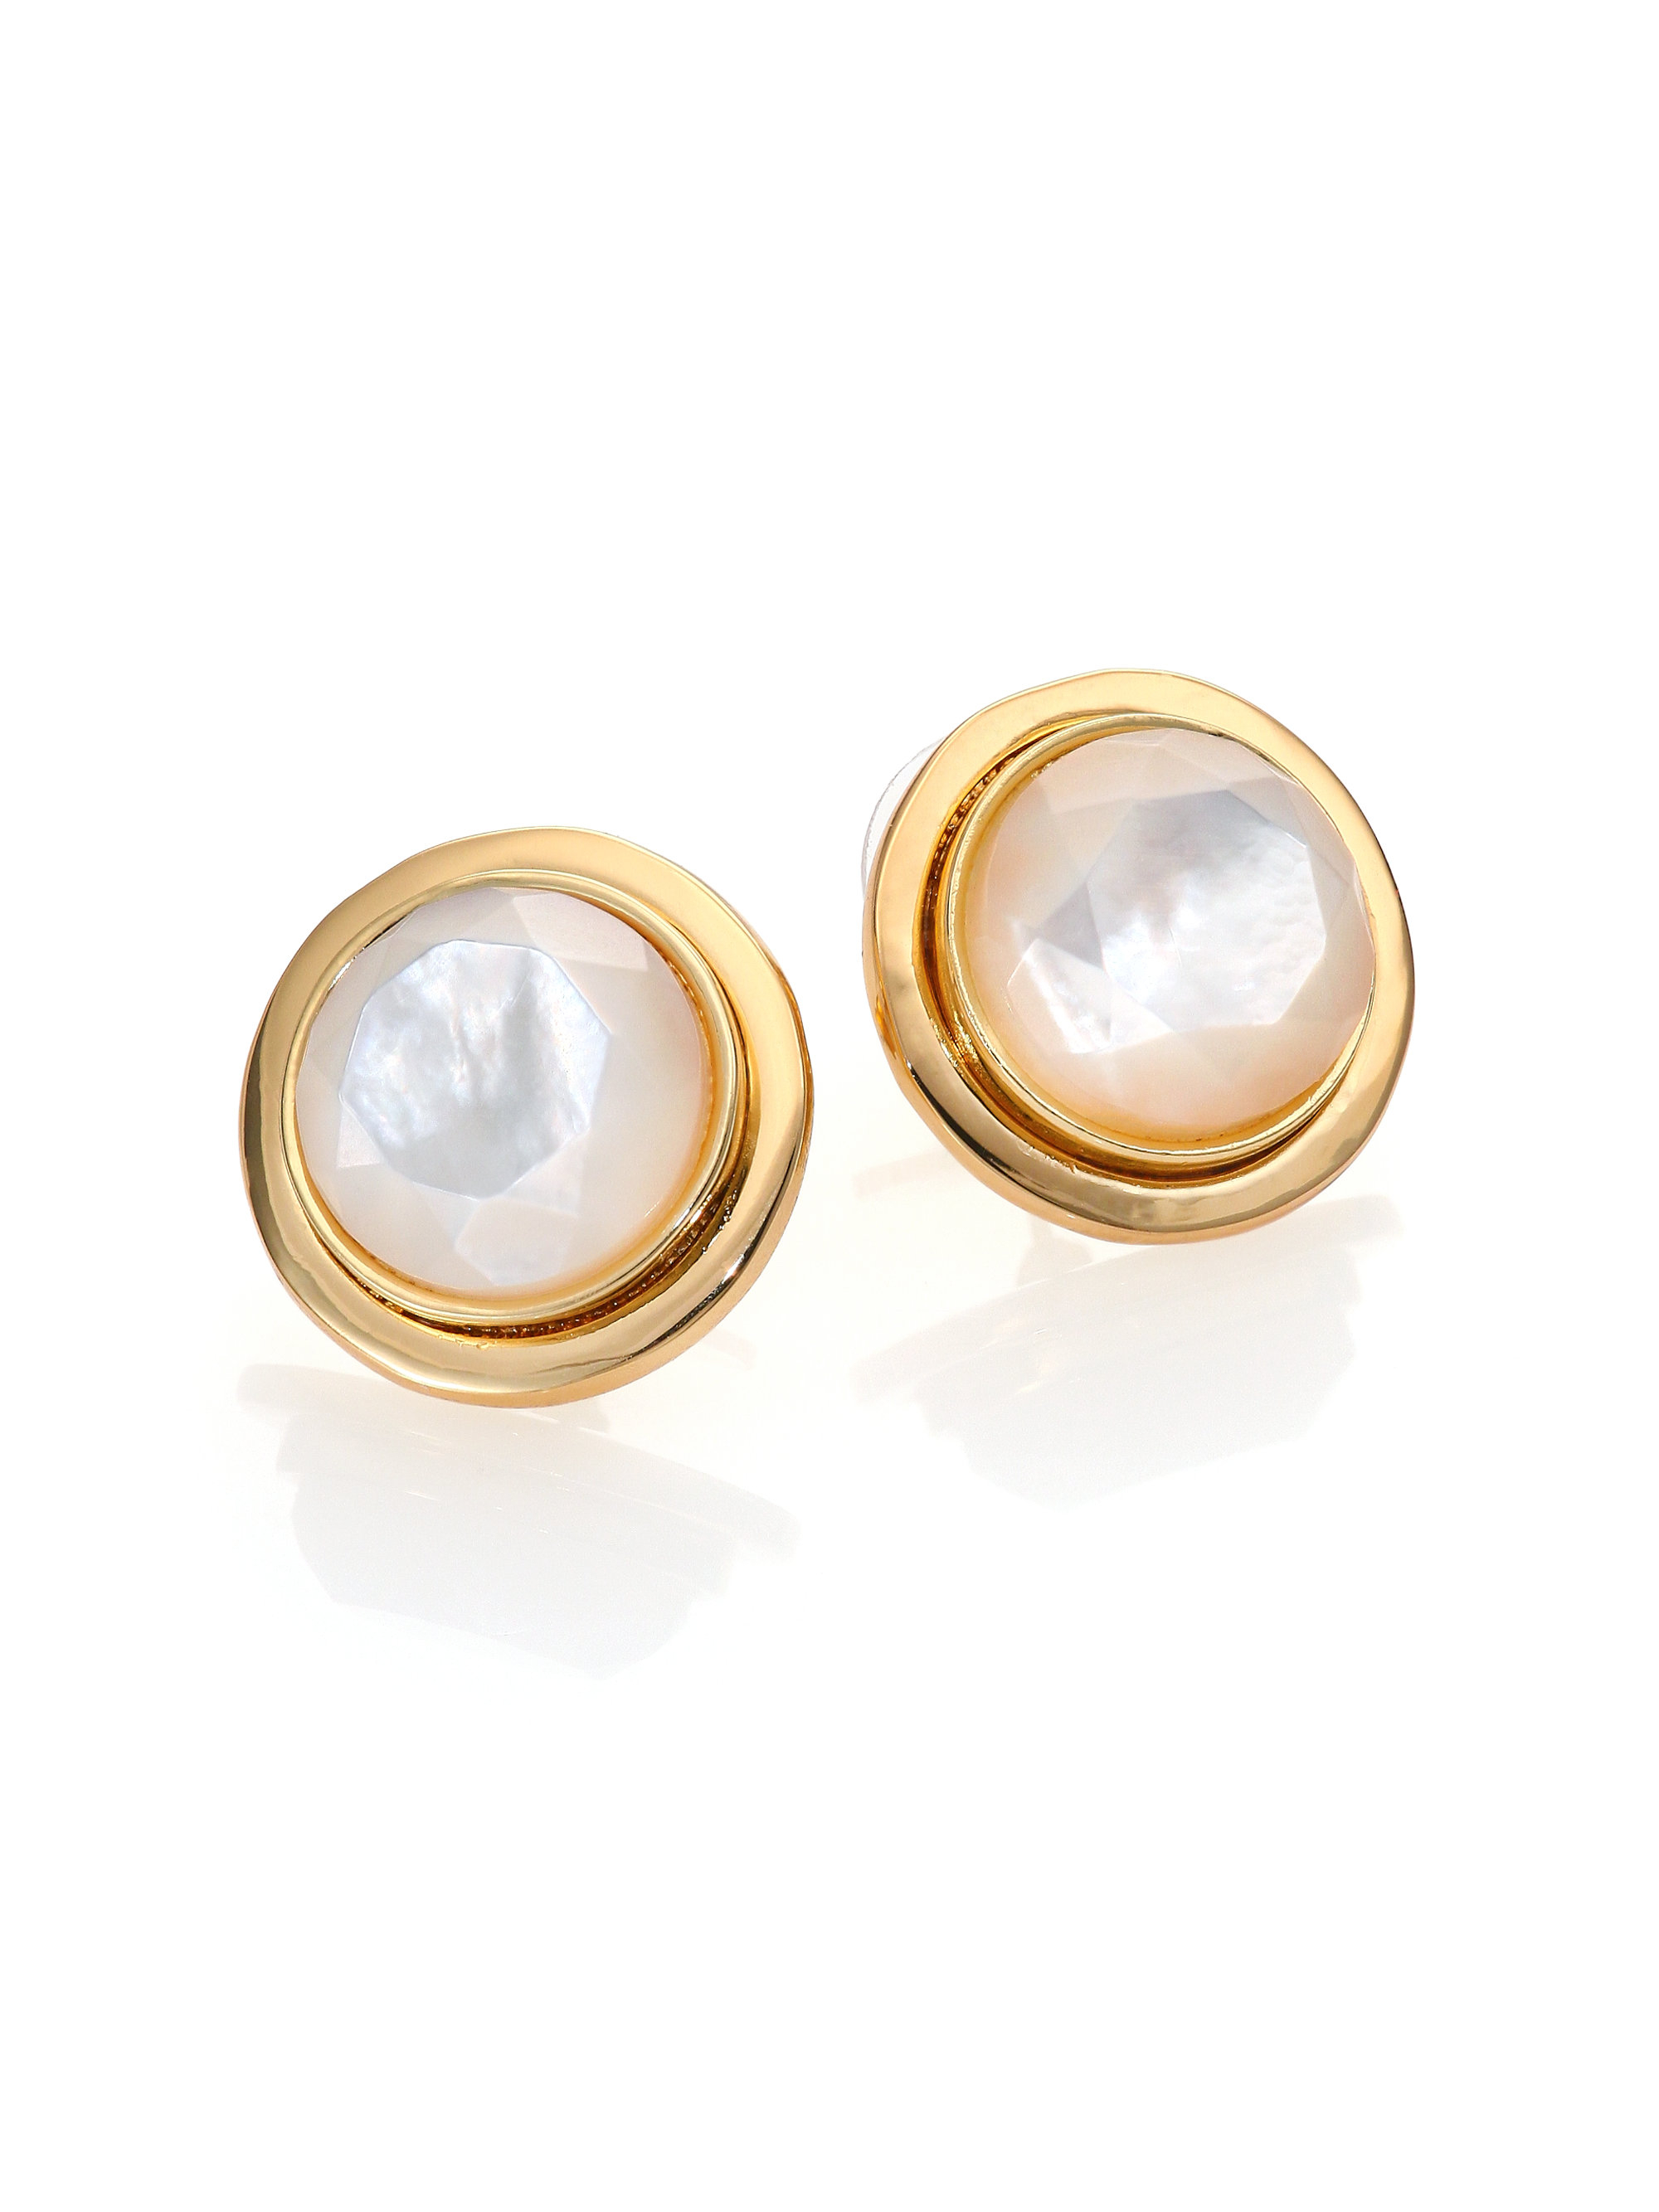 blushing bridal pin stud earrings jewelry faux pearl at drop bride in bhldn